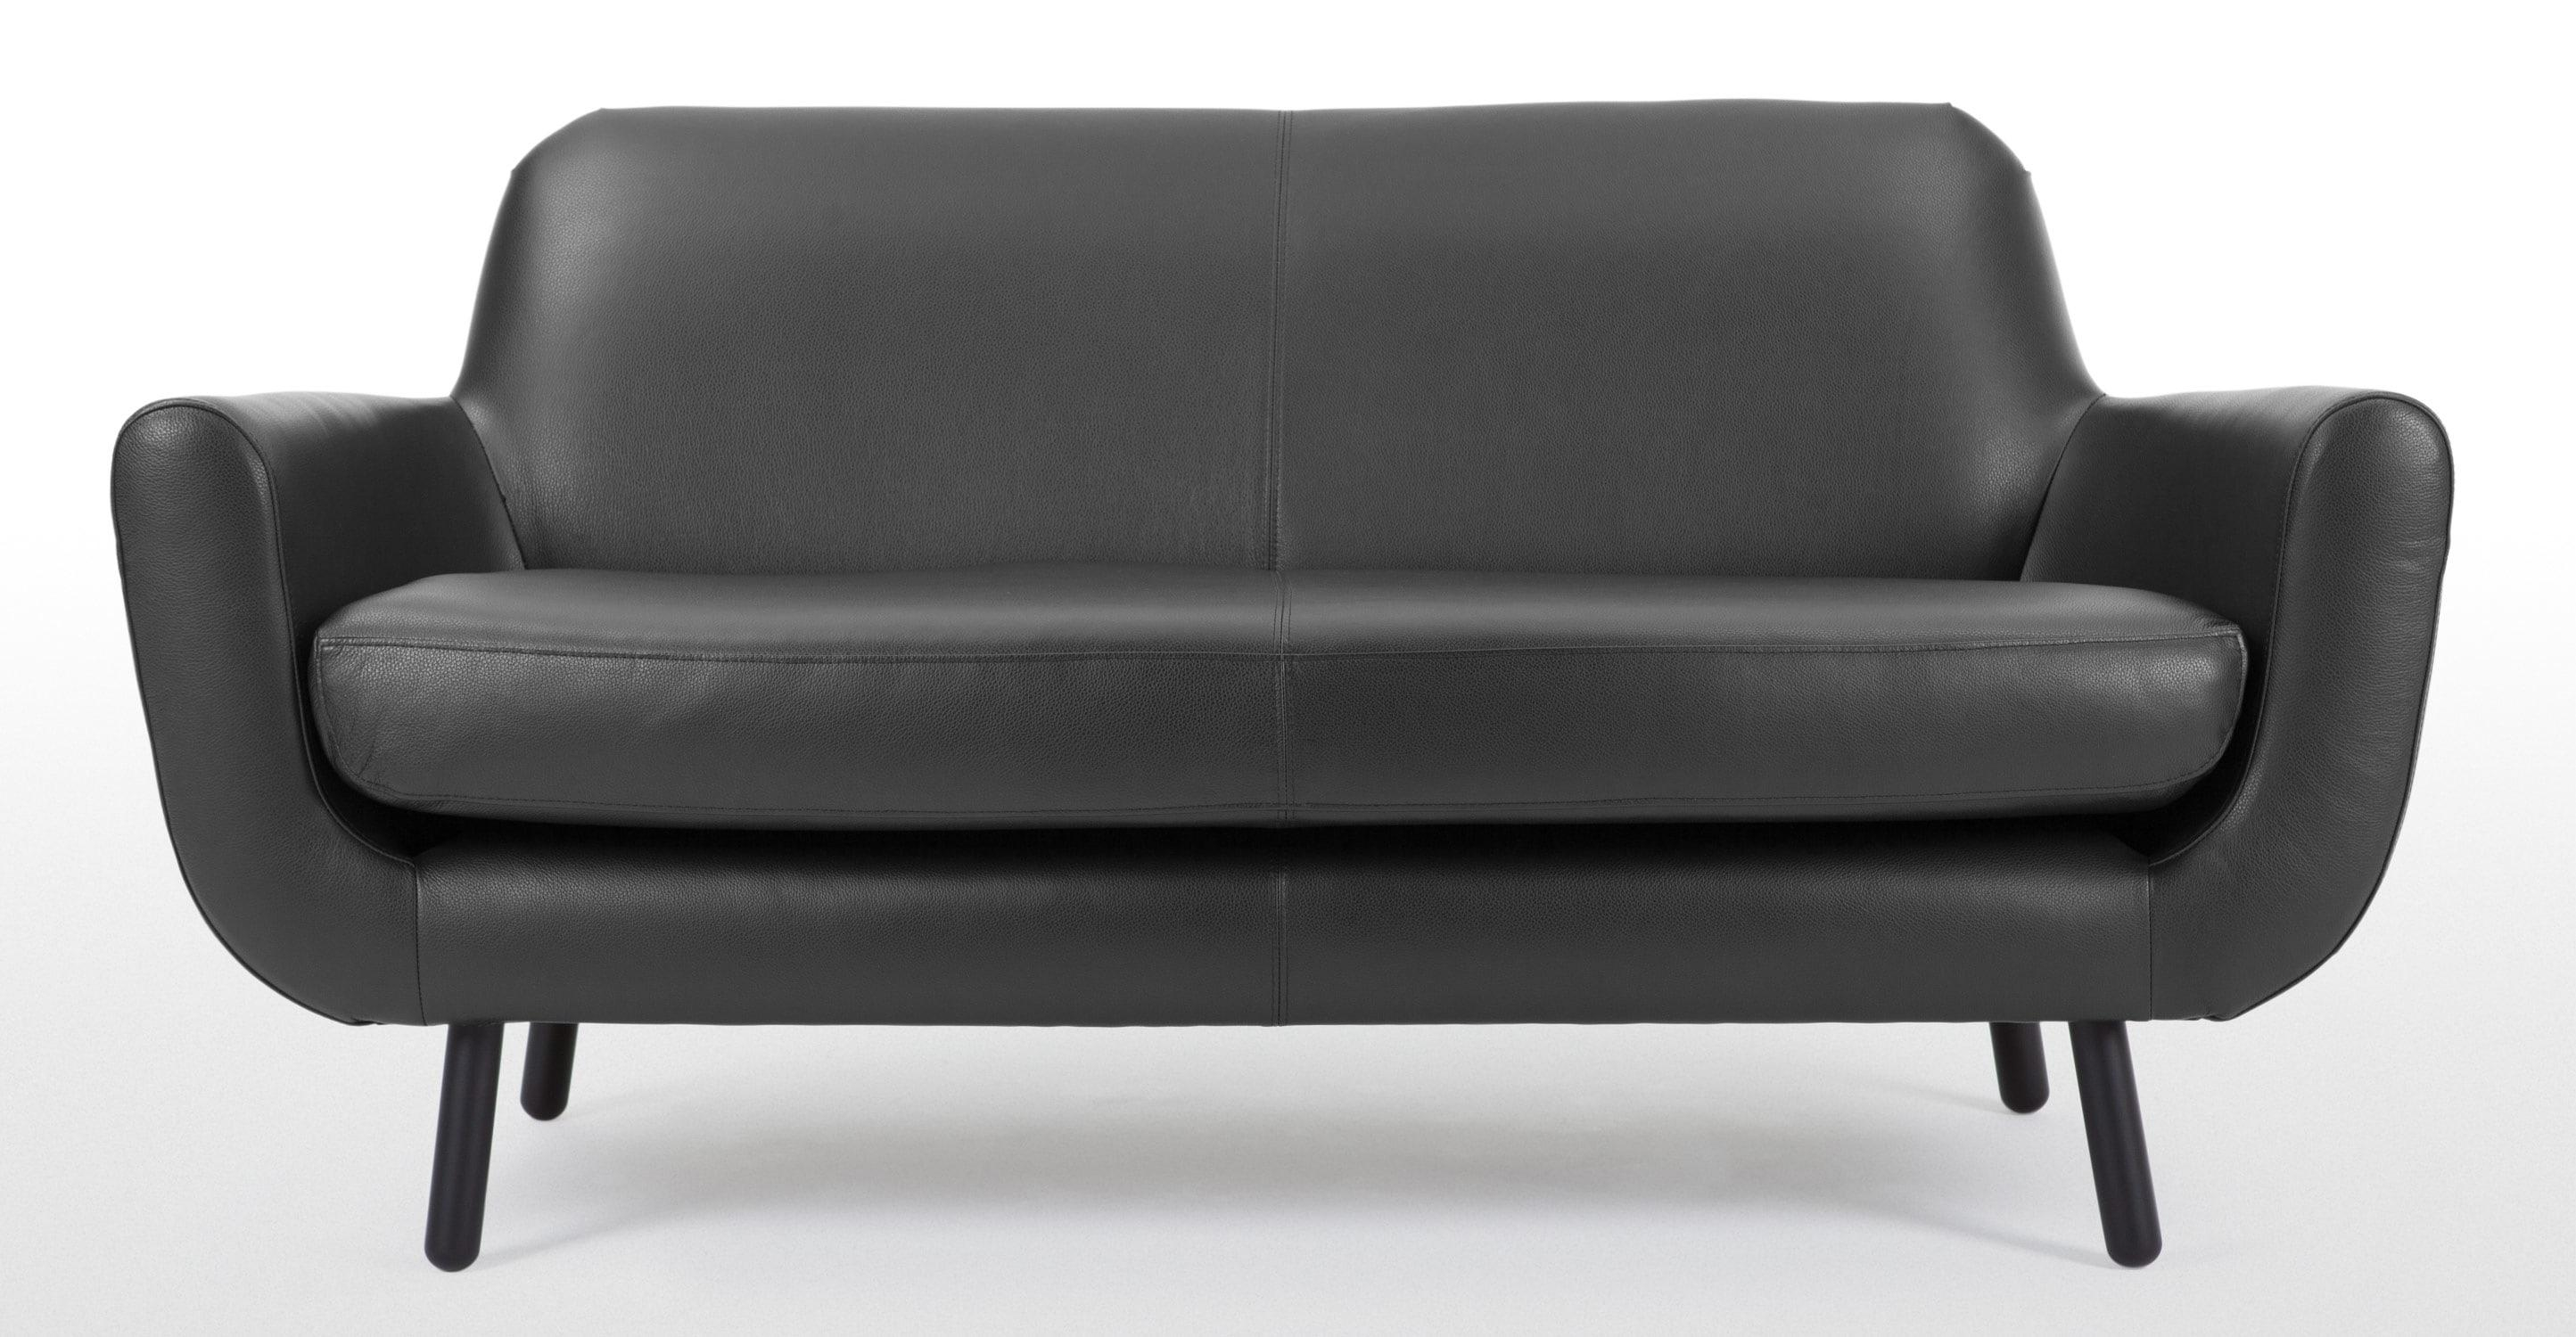 Jonah 2 Seater Sofa In Liquorice Black Premium Leather | Made for Black 2 Seater Sofas